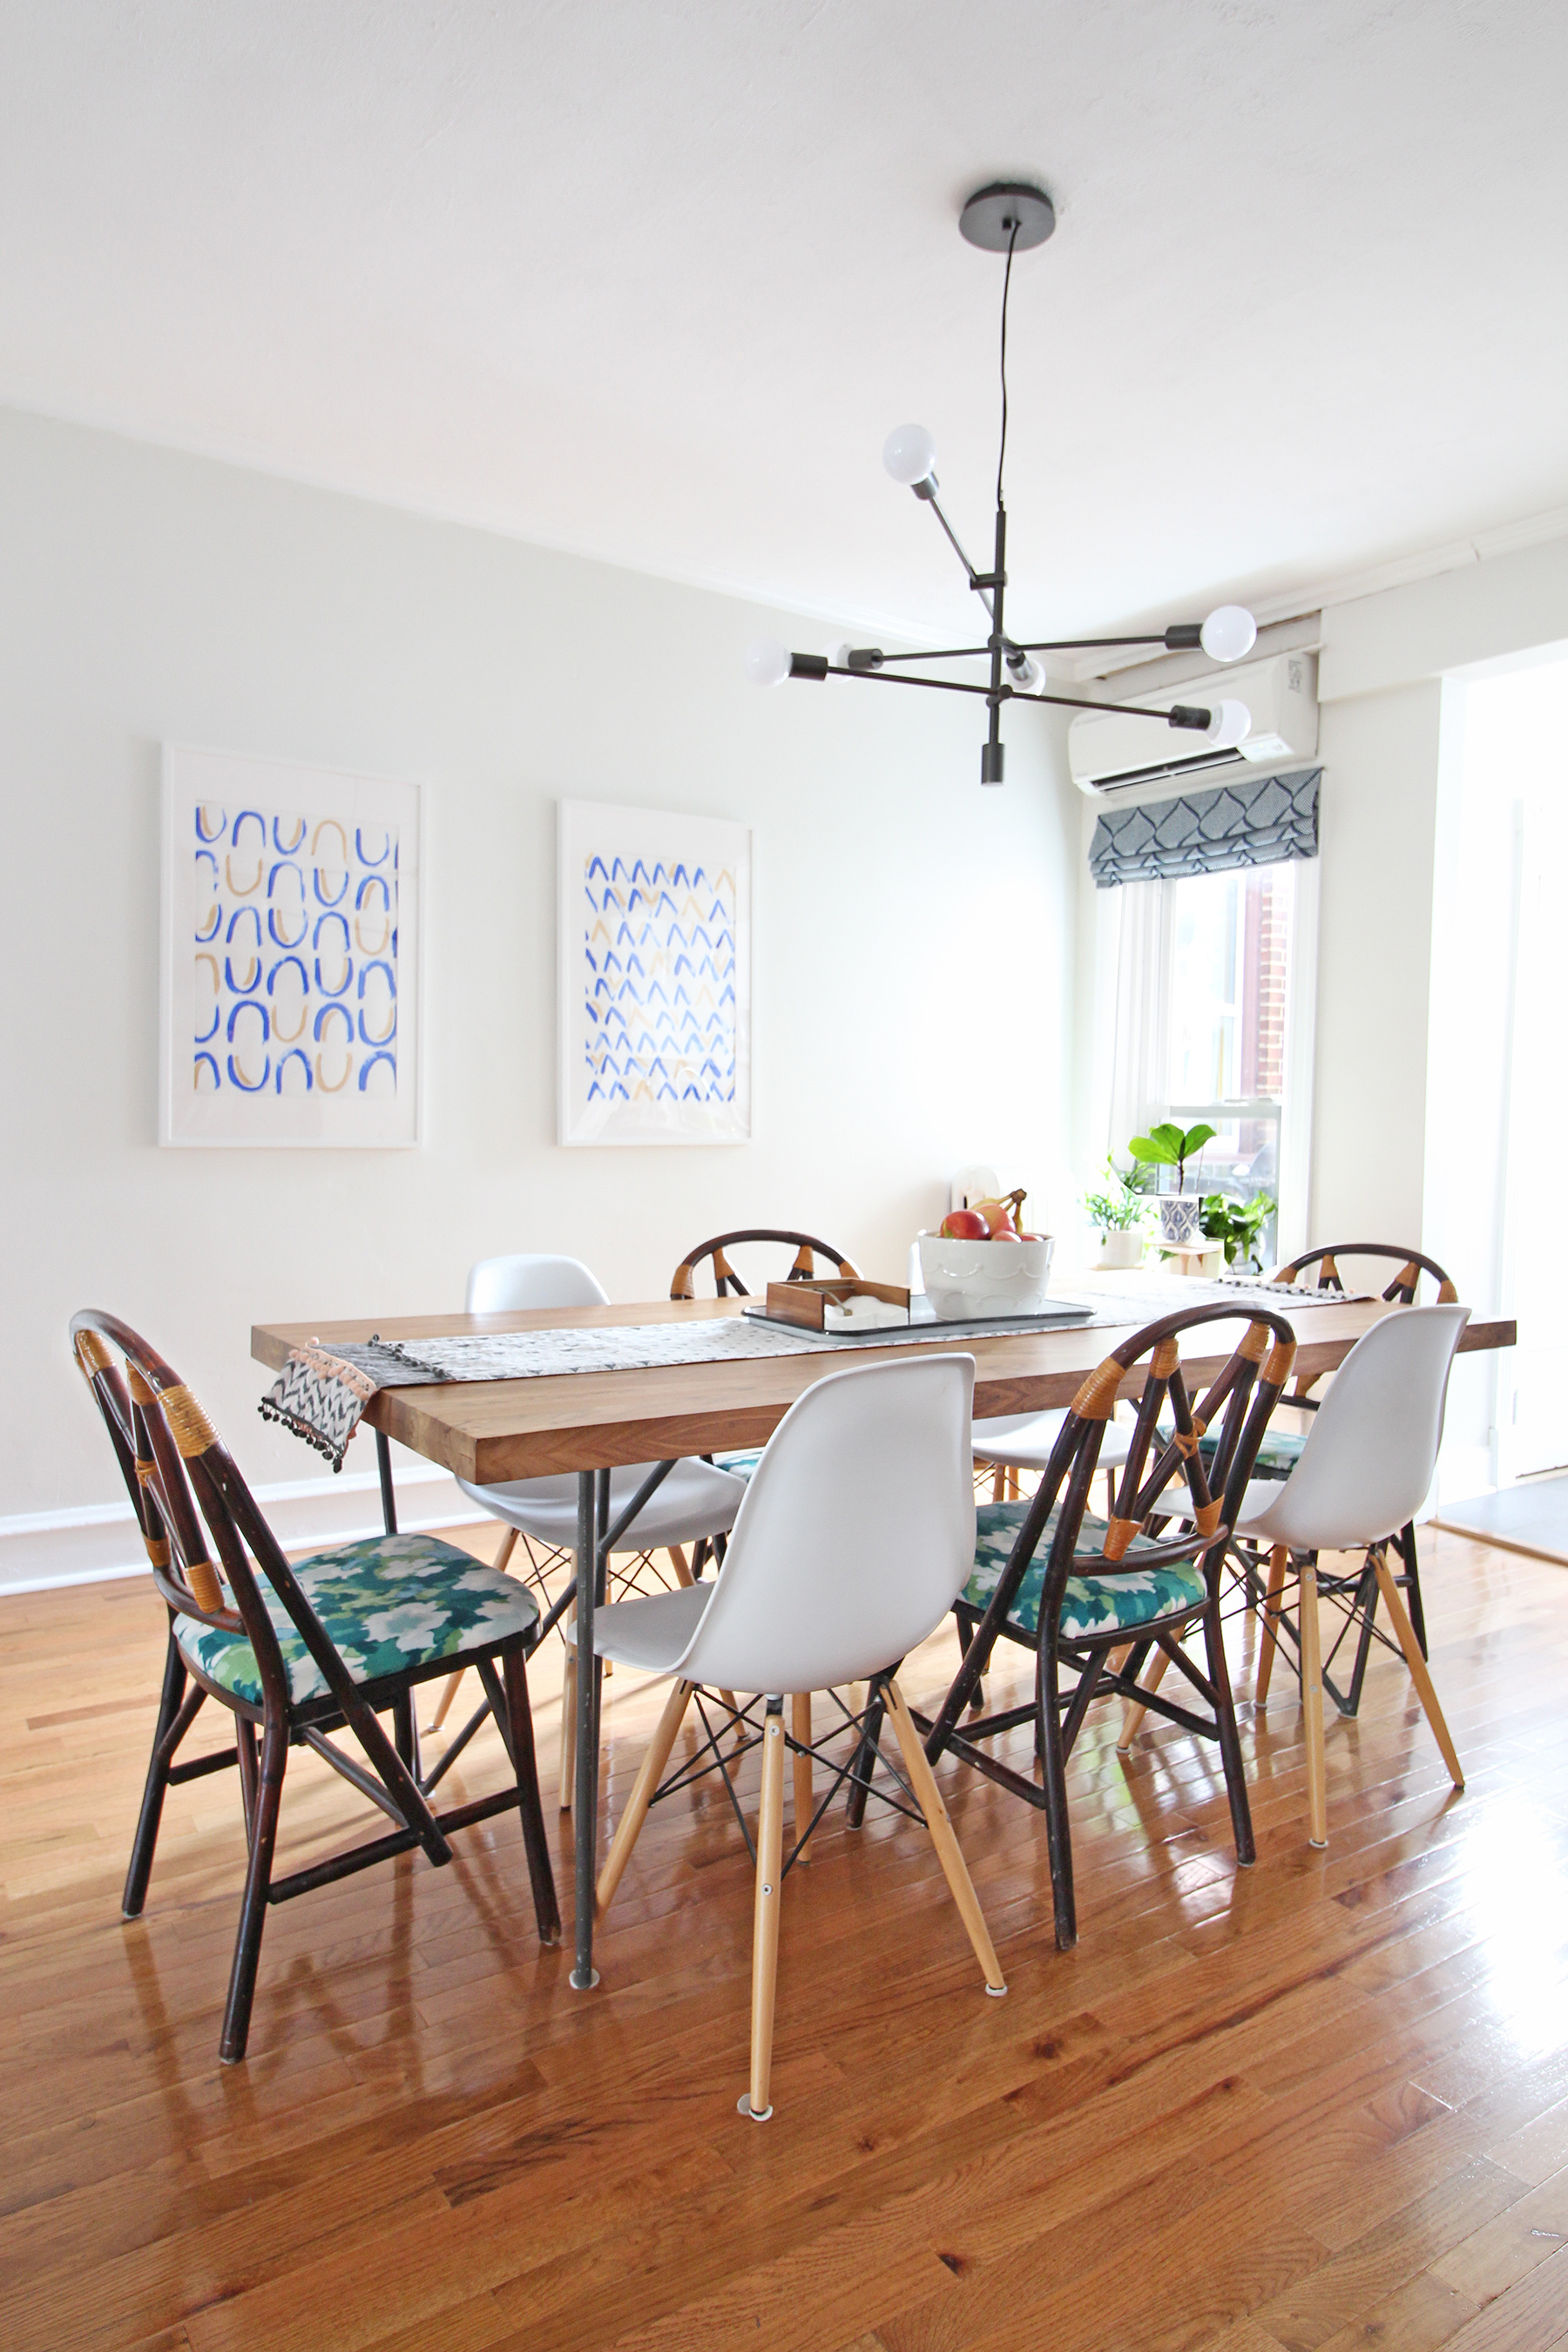 A 1930s row home in Philadelphia gets a big makeover. Come see the before and after of this home's living, dining, and kitchen open floor plan and get ideas for small space city living. Chaney's style is mid-century modern meets traditional that makes for an eclectic, cozy space. The dining table was a Craigslist find and her mix of dining chairs continues the eclectic vibe.